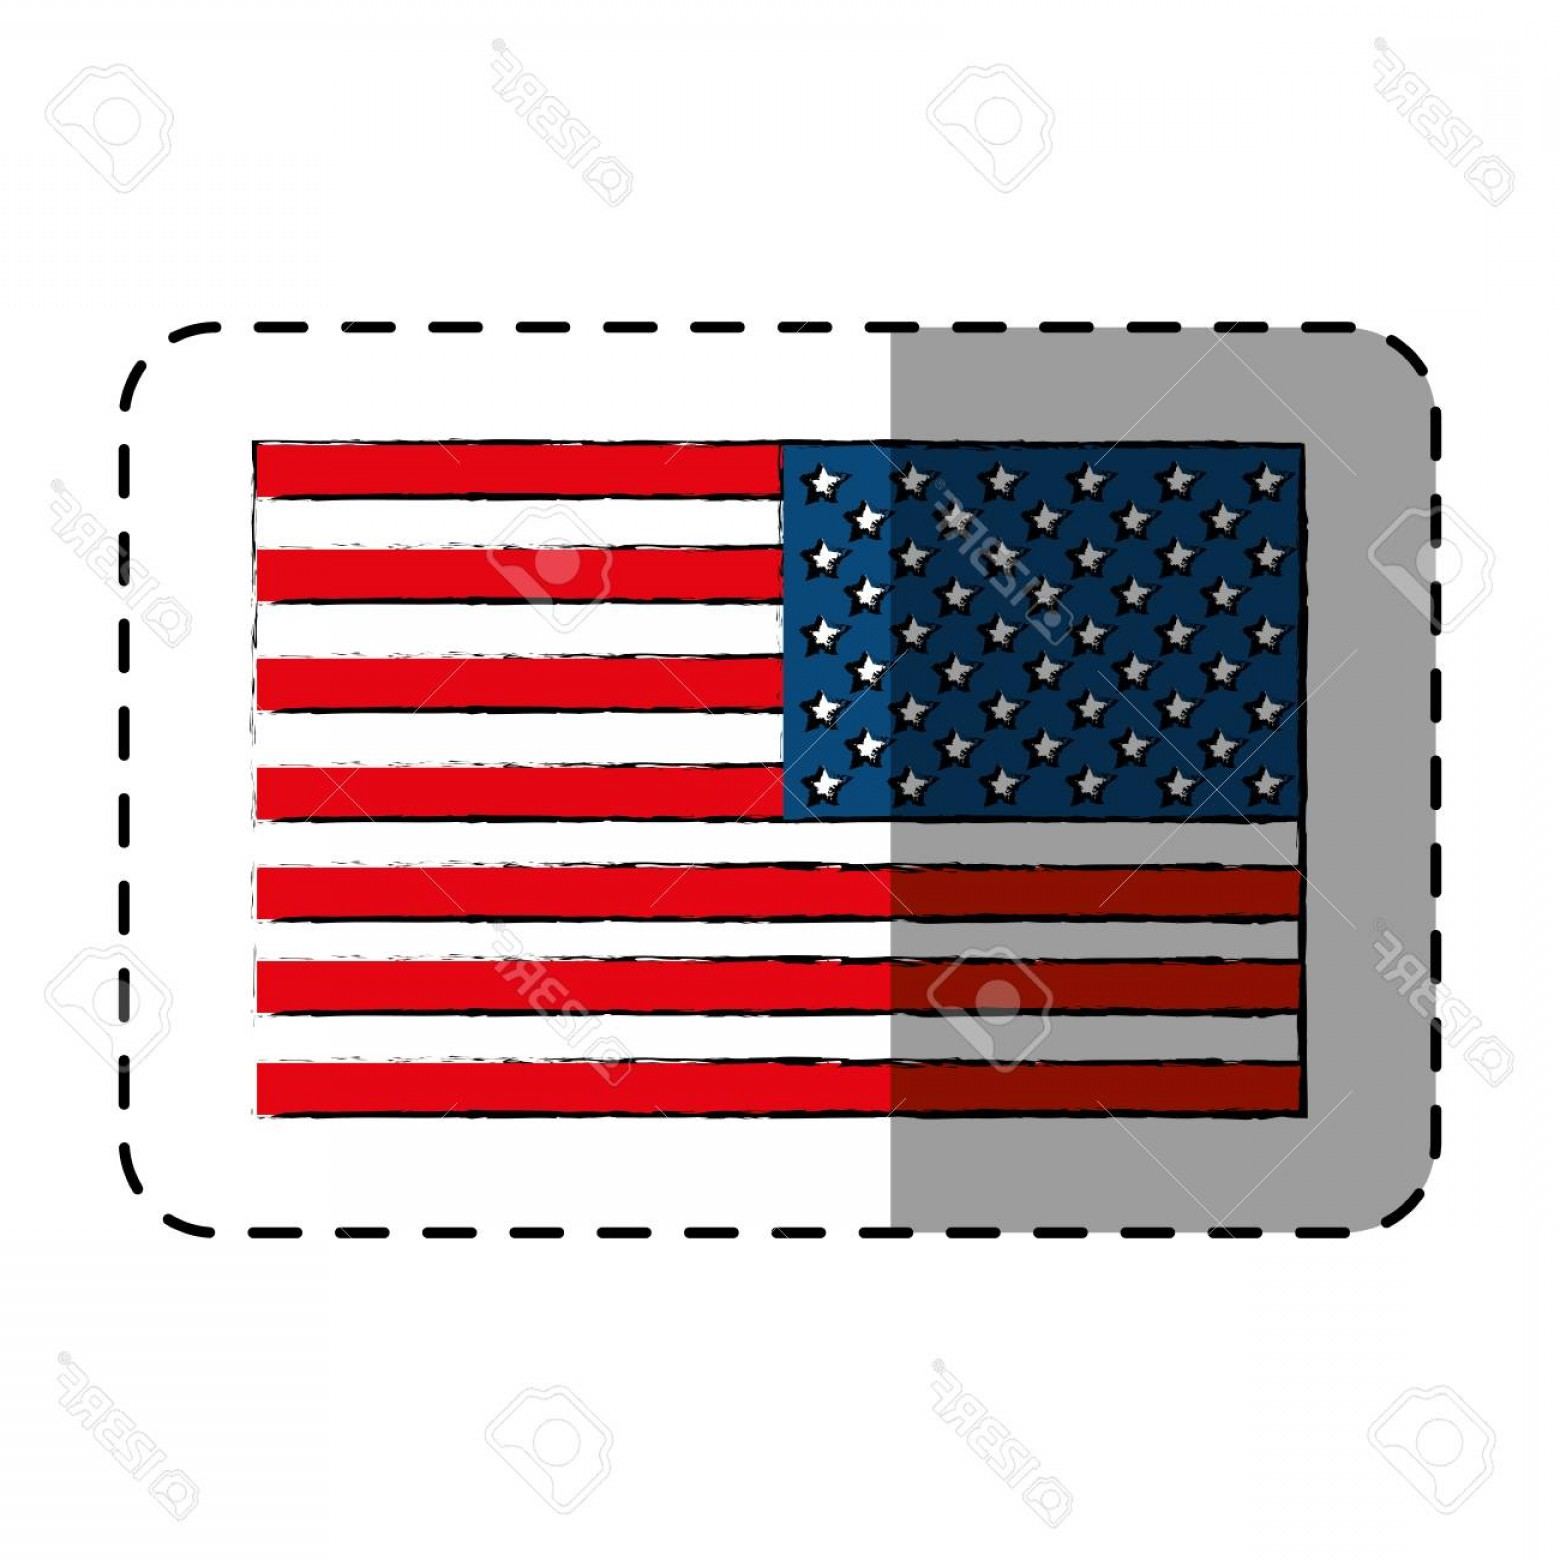 State Flag Images Vector: Photostock Vector United States Of America Flag Vector Illustration Design